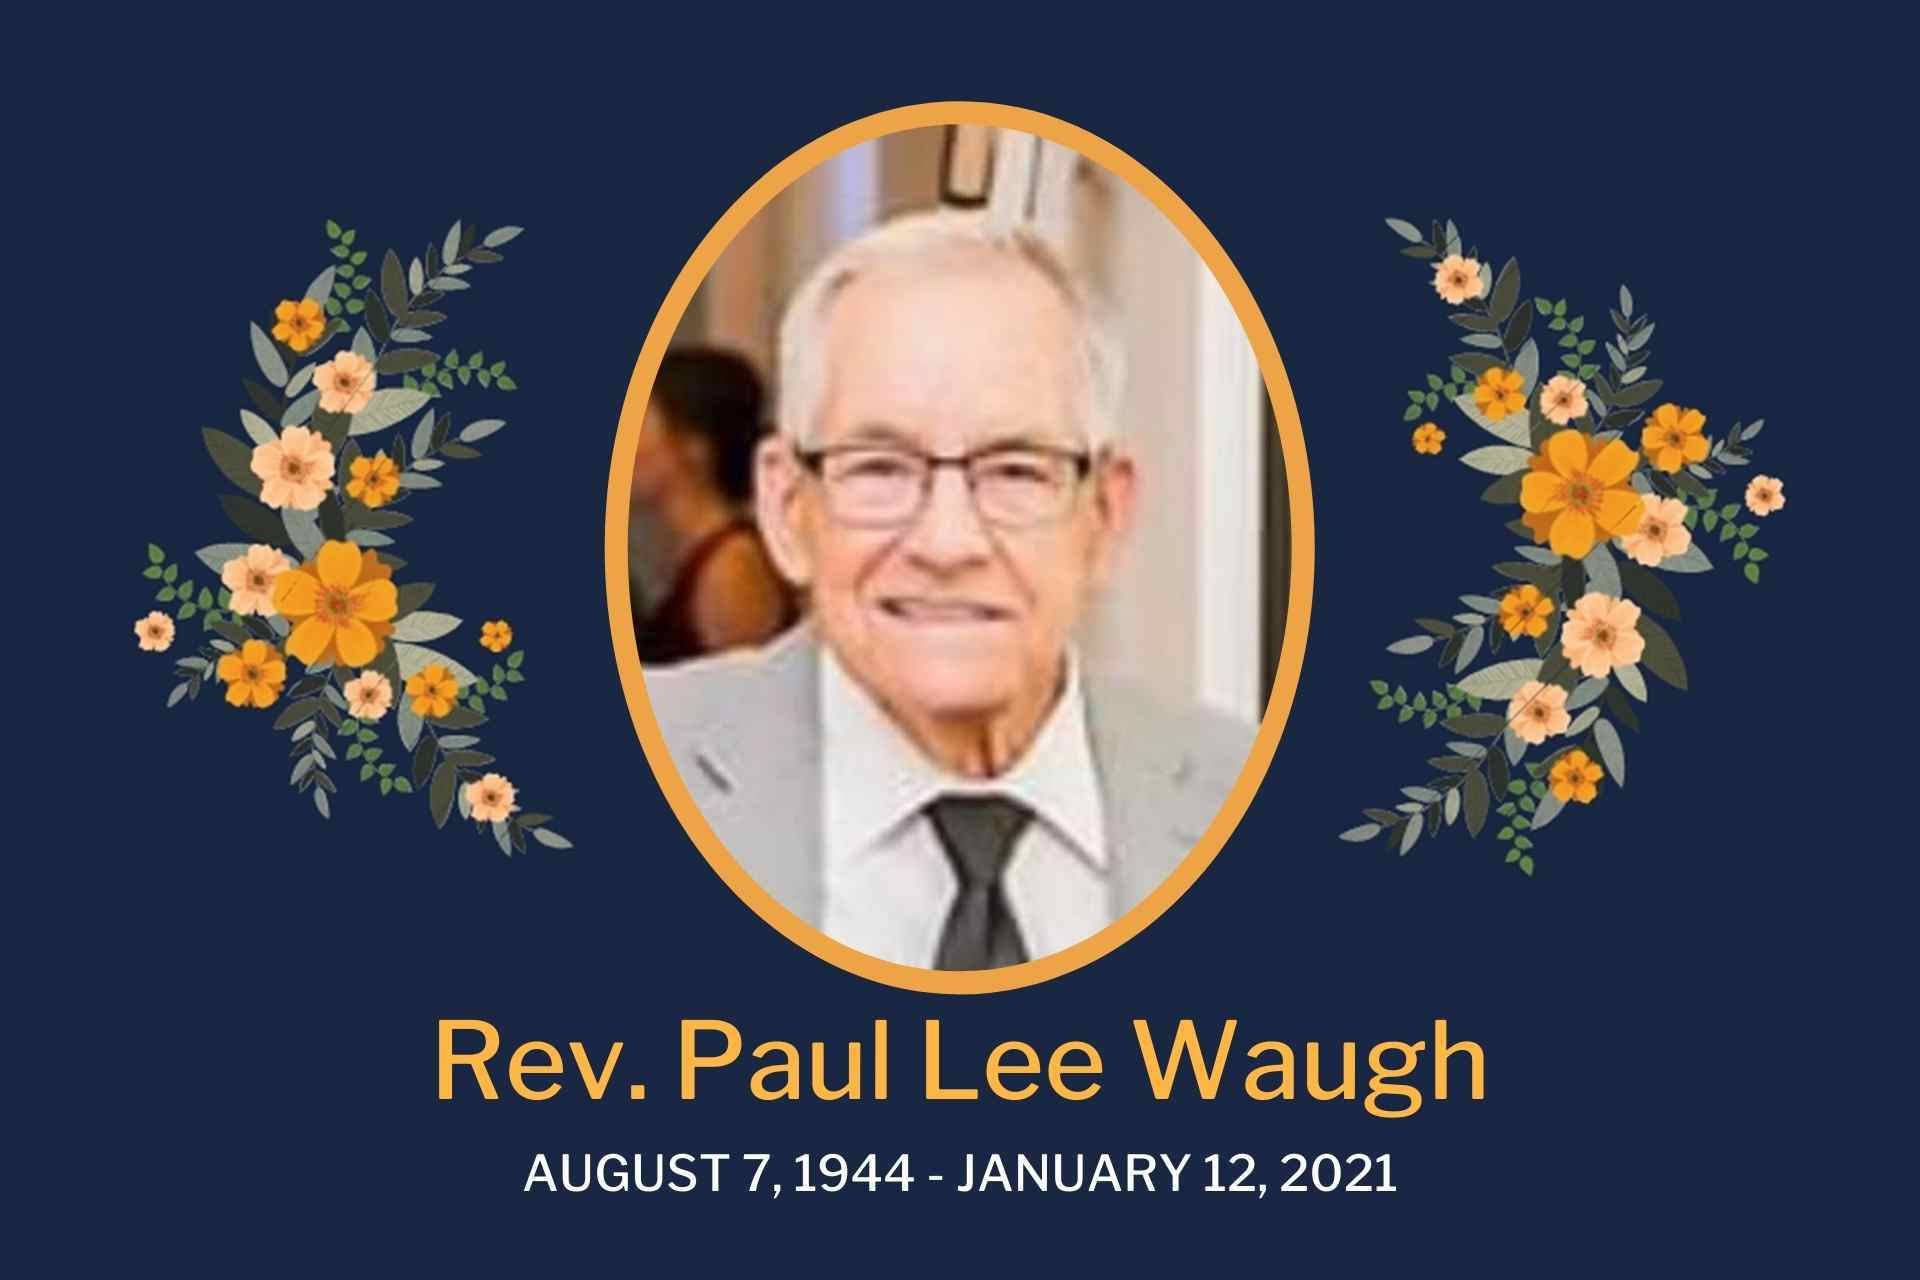 Rev. Paul Lee Waugh